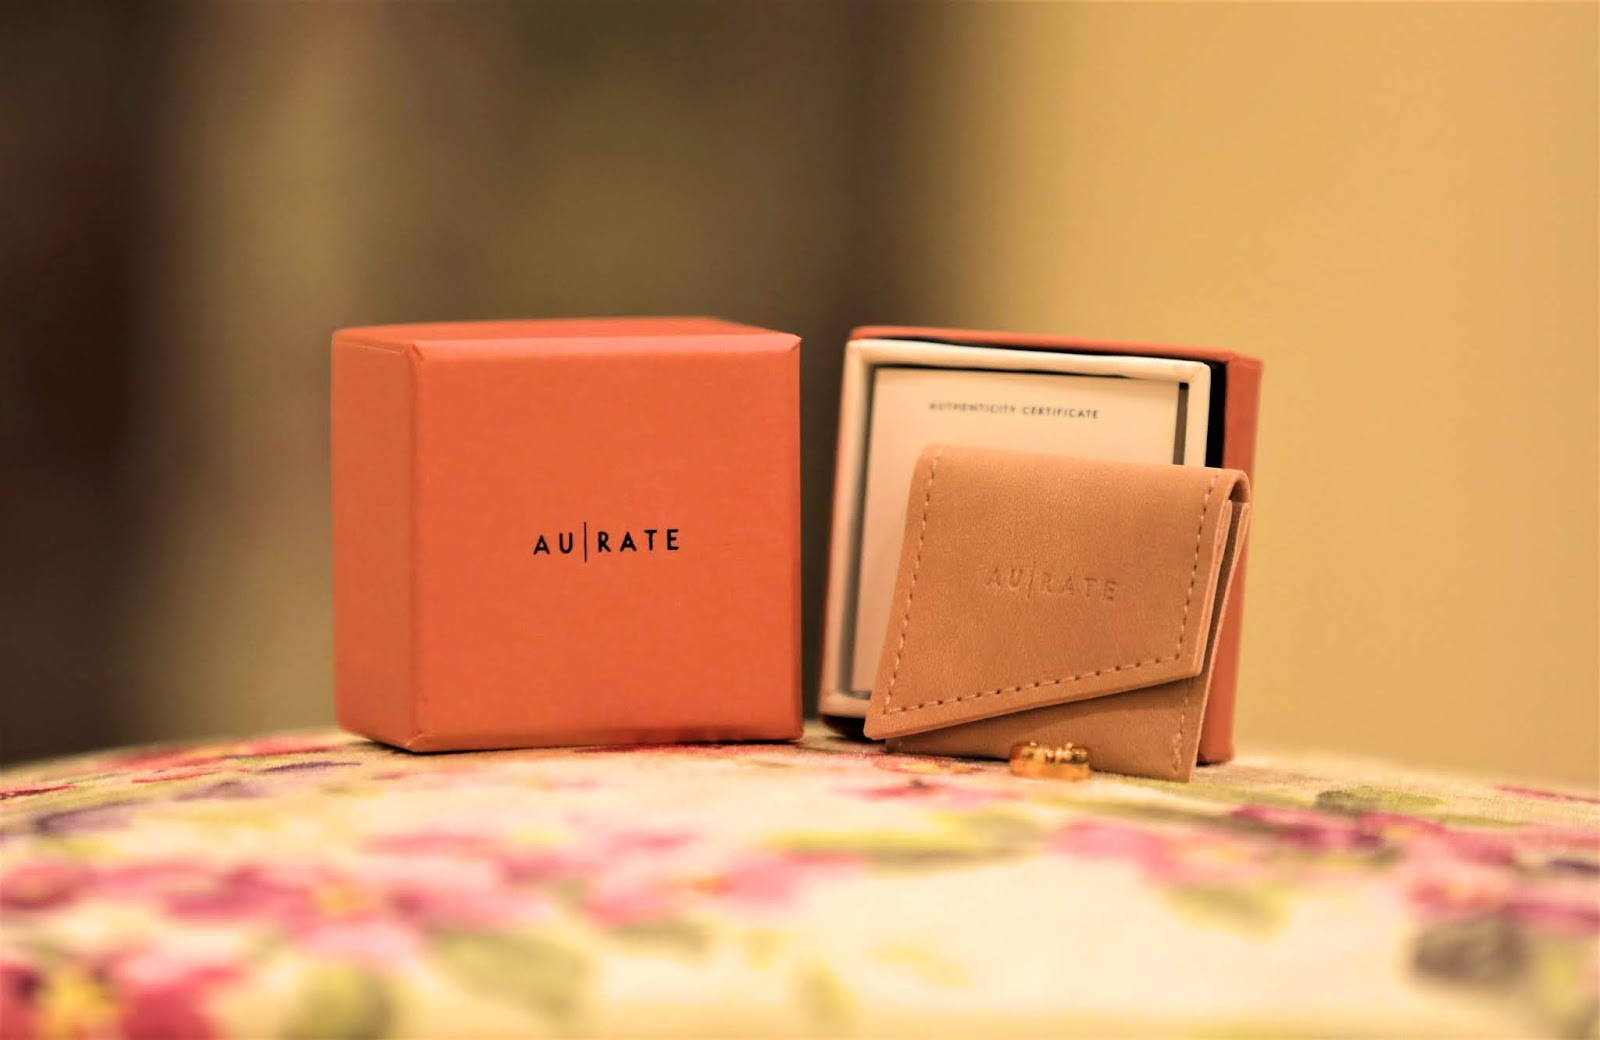 Aurate Ethical jewelry brand - Ethically sourced gold - recycled gold